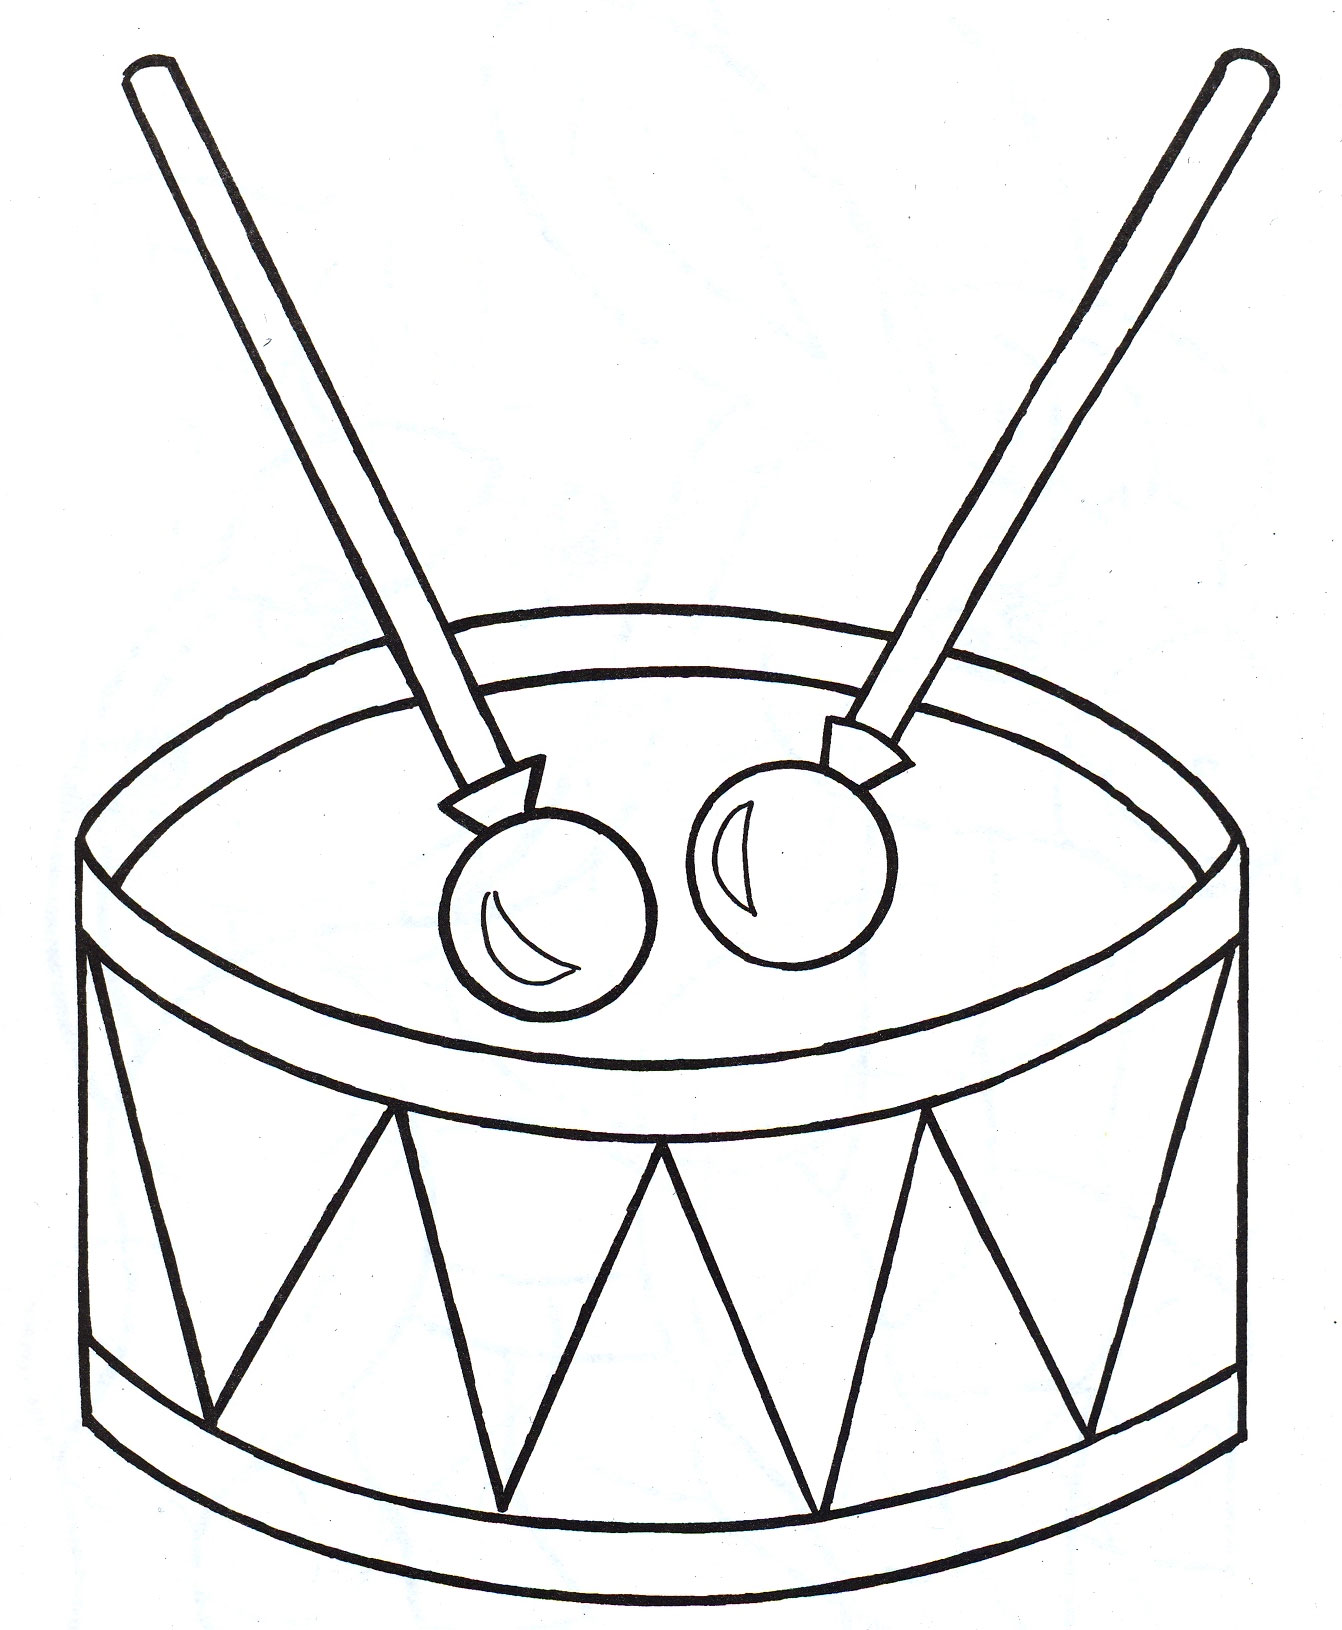 coloring pages drum - photo#13